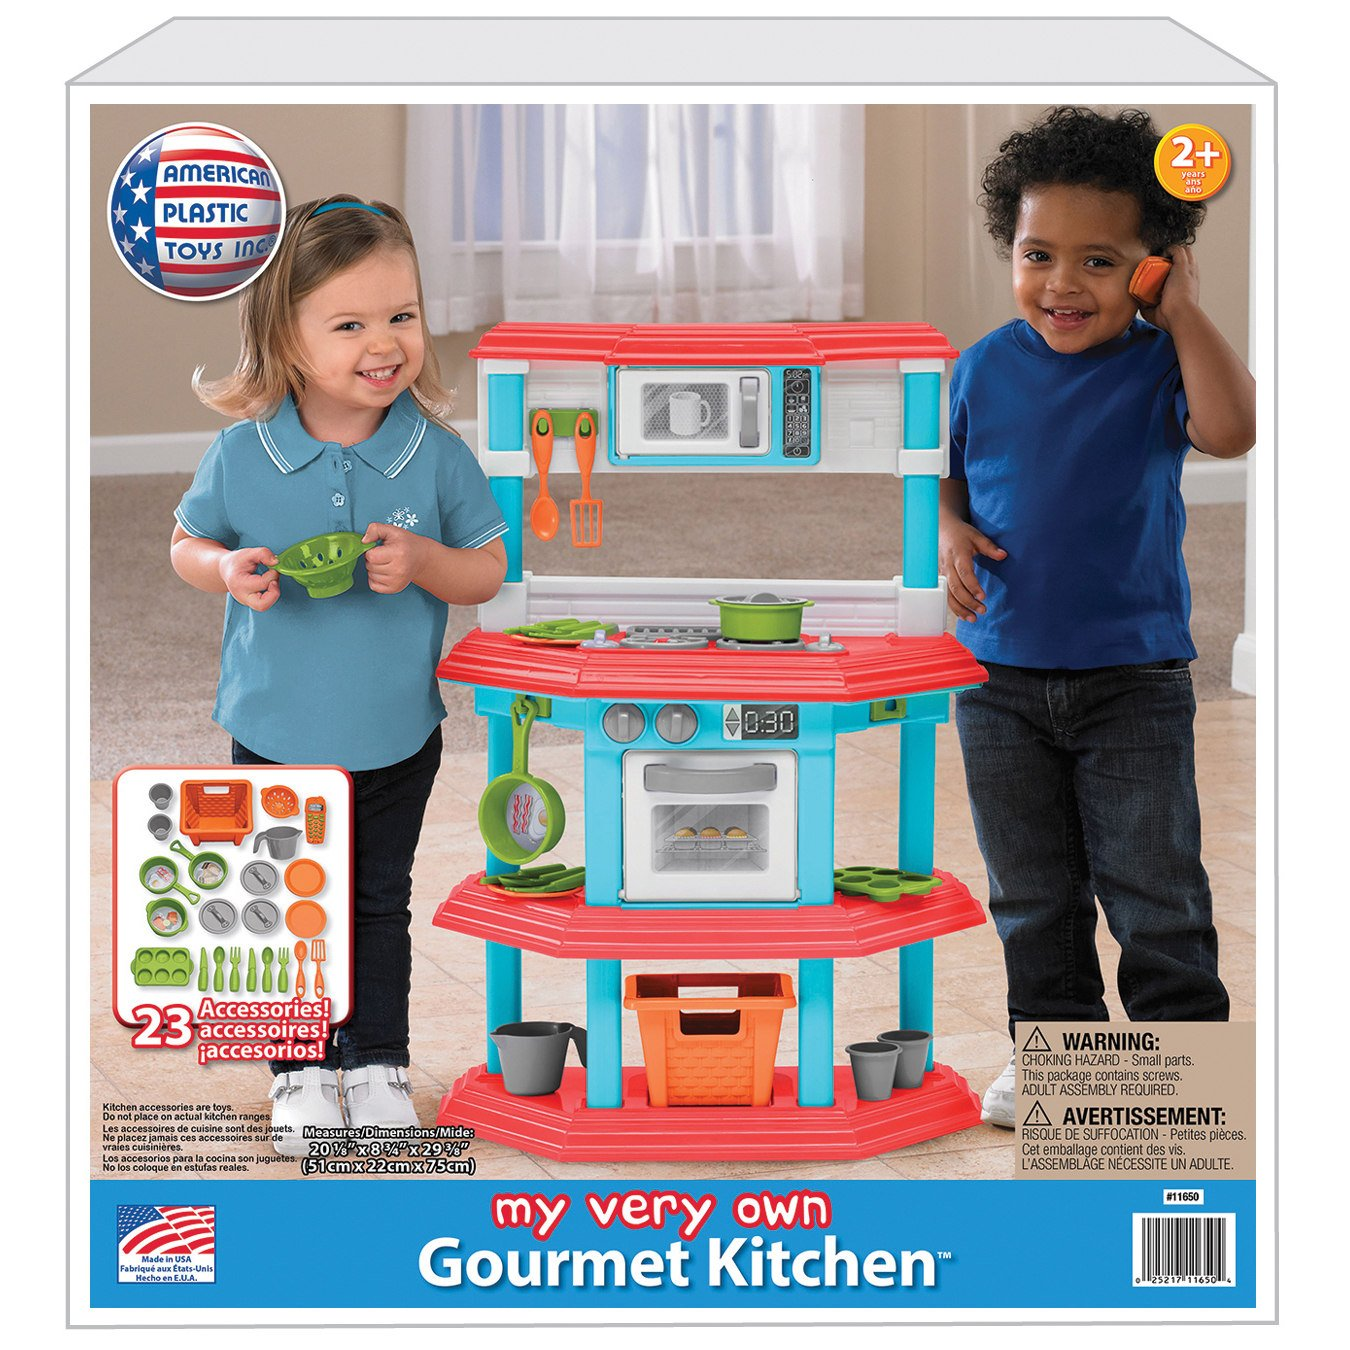 amazon com  my very own gourmet kitchen pretend playset toys with 23 play kids accessories super fun culinary based play set great gift idea  toys  u0026 games amazon com  my very own gourmet kitchen pretend playset toys with      rh   amazon com